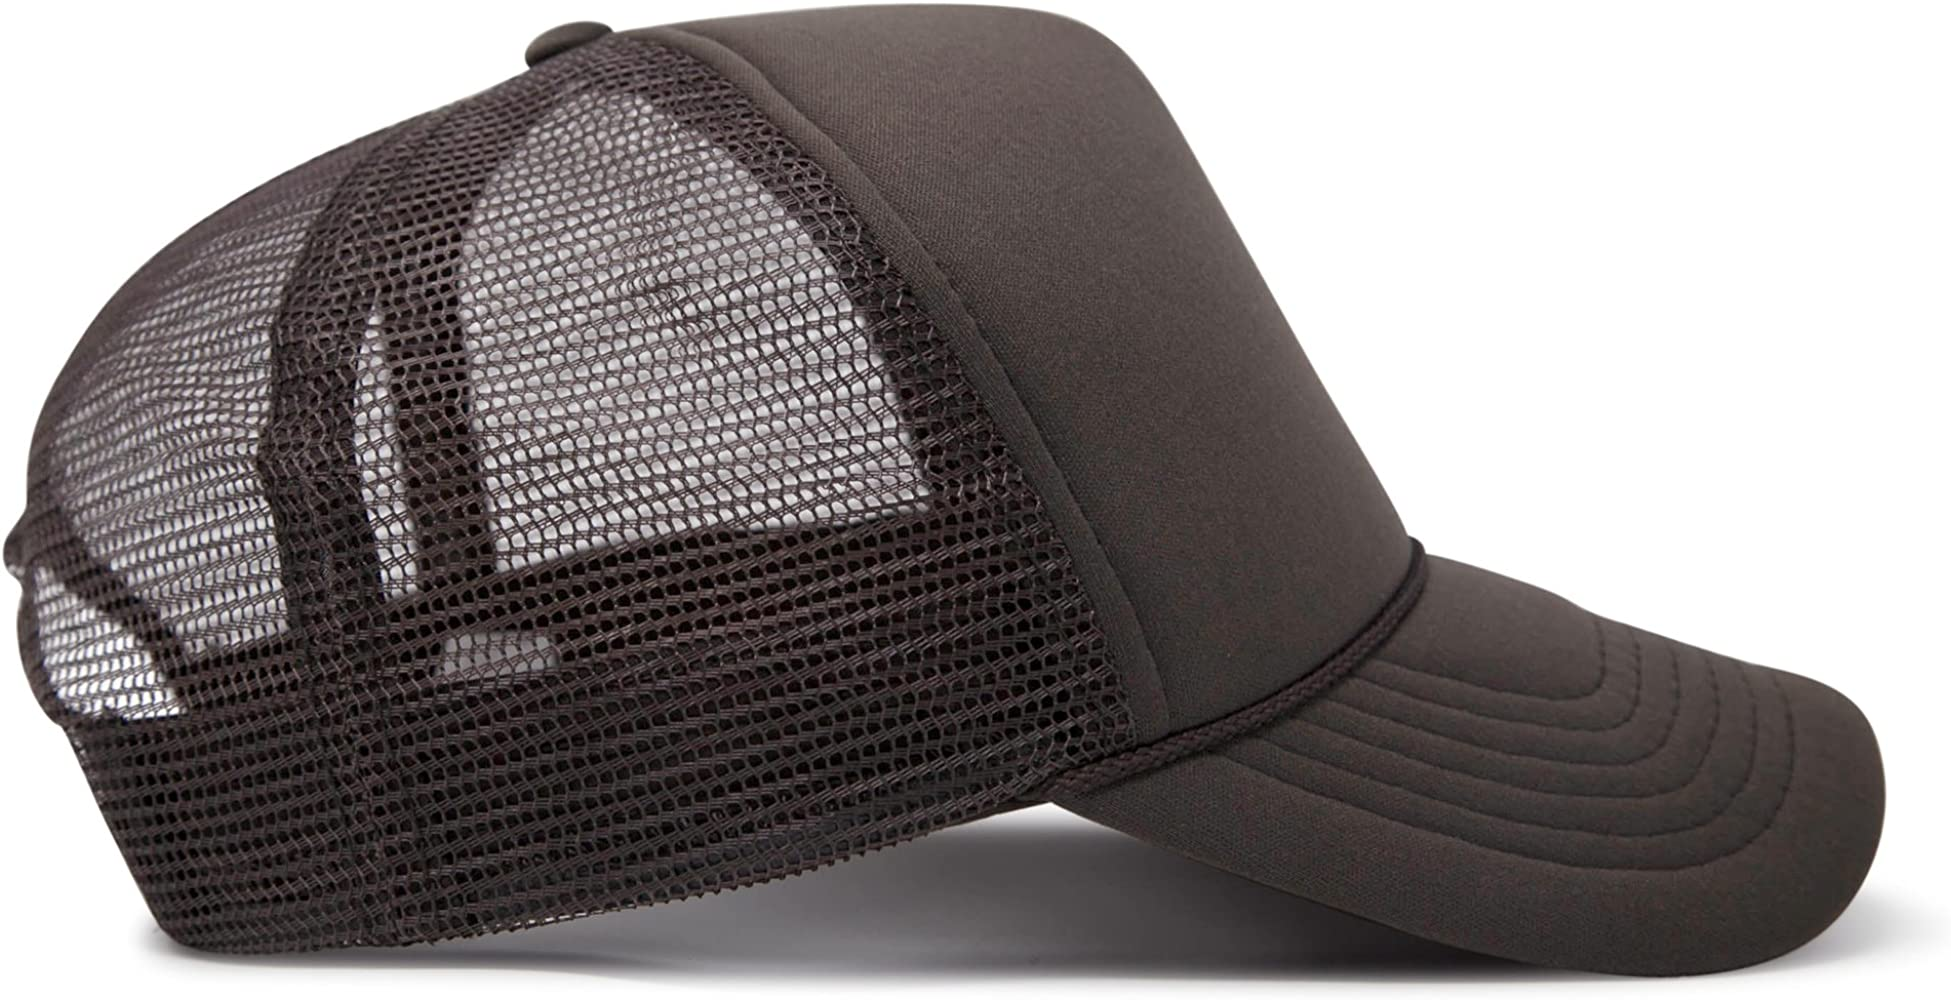 402a178ff4d Trucker Cap Mesh Hat with Solid Colors and Adjustable Strap and ...